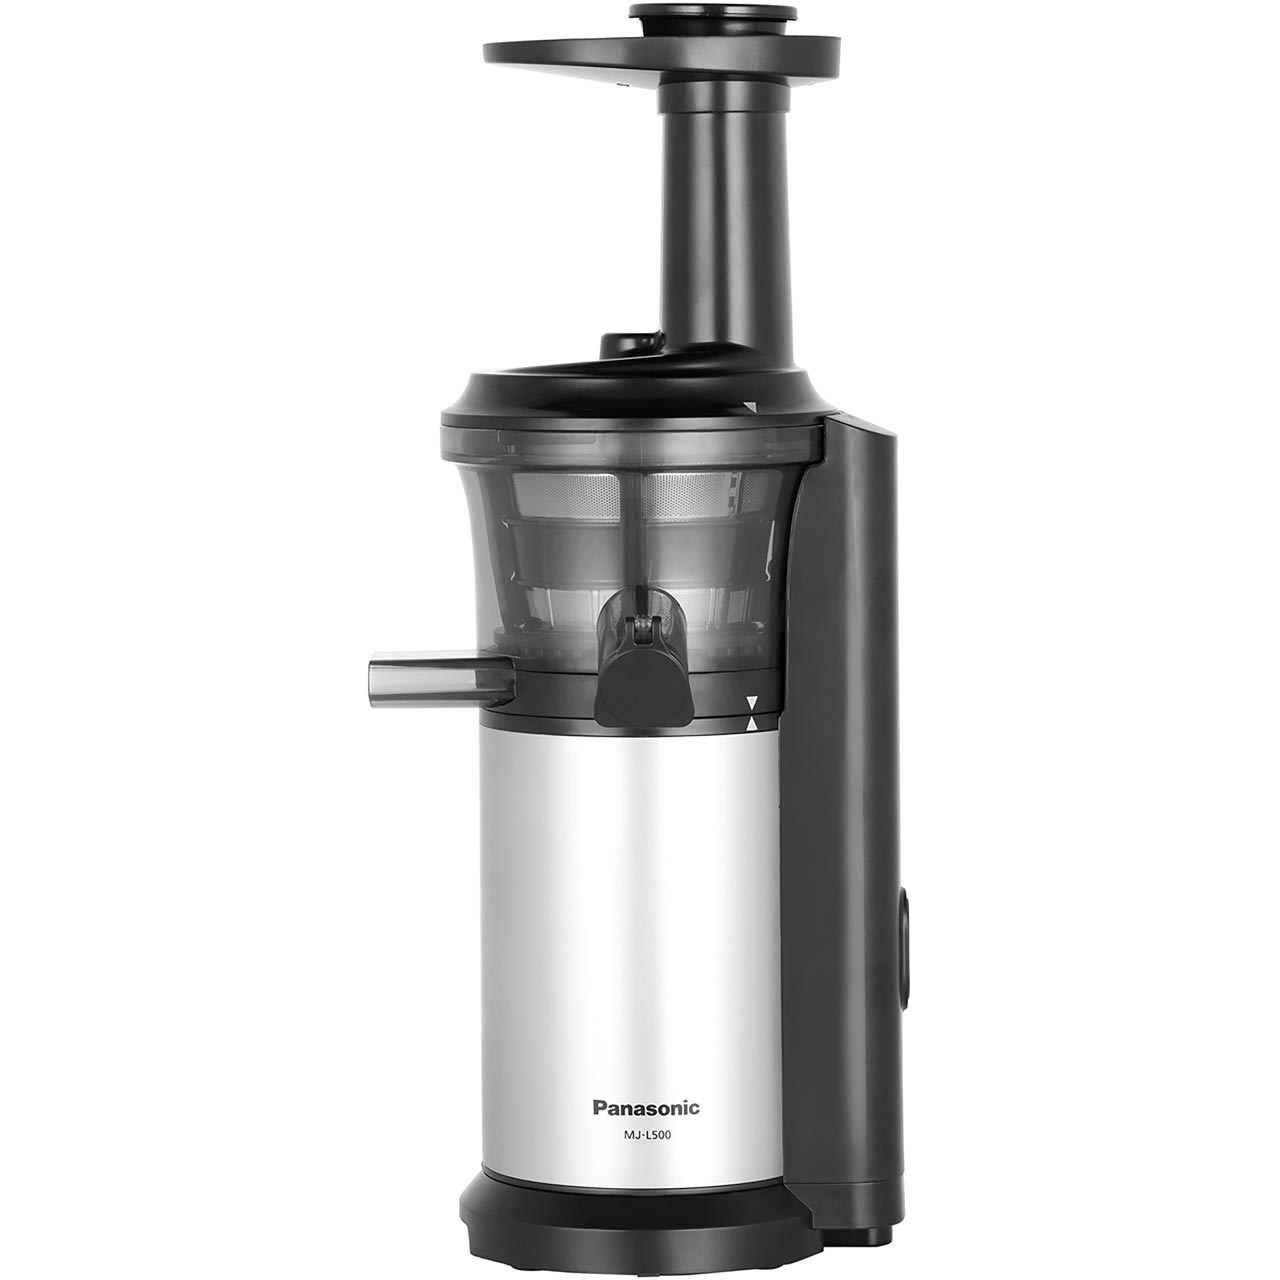 Panasonic Slow Juicer Cleaning : Panasonic MJ-L500SXC Slow Juicer - Silver